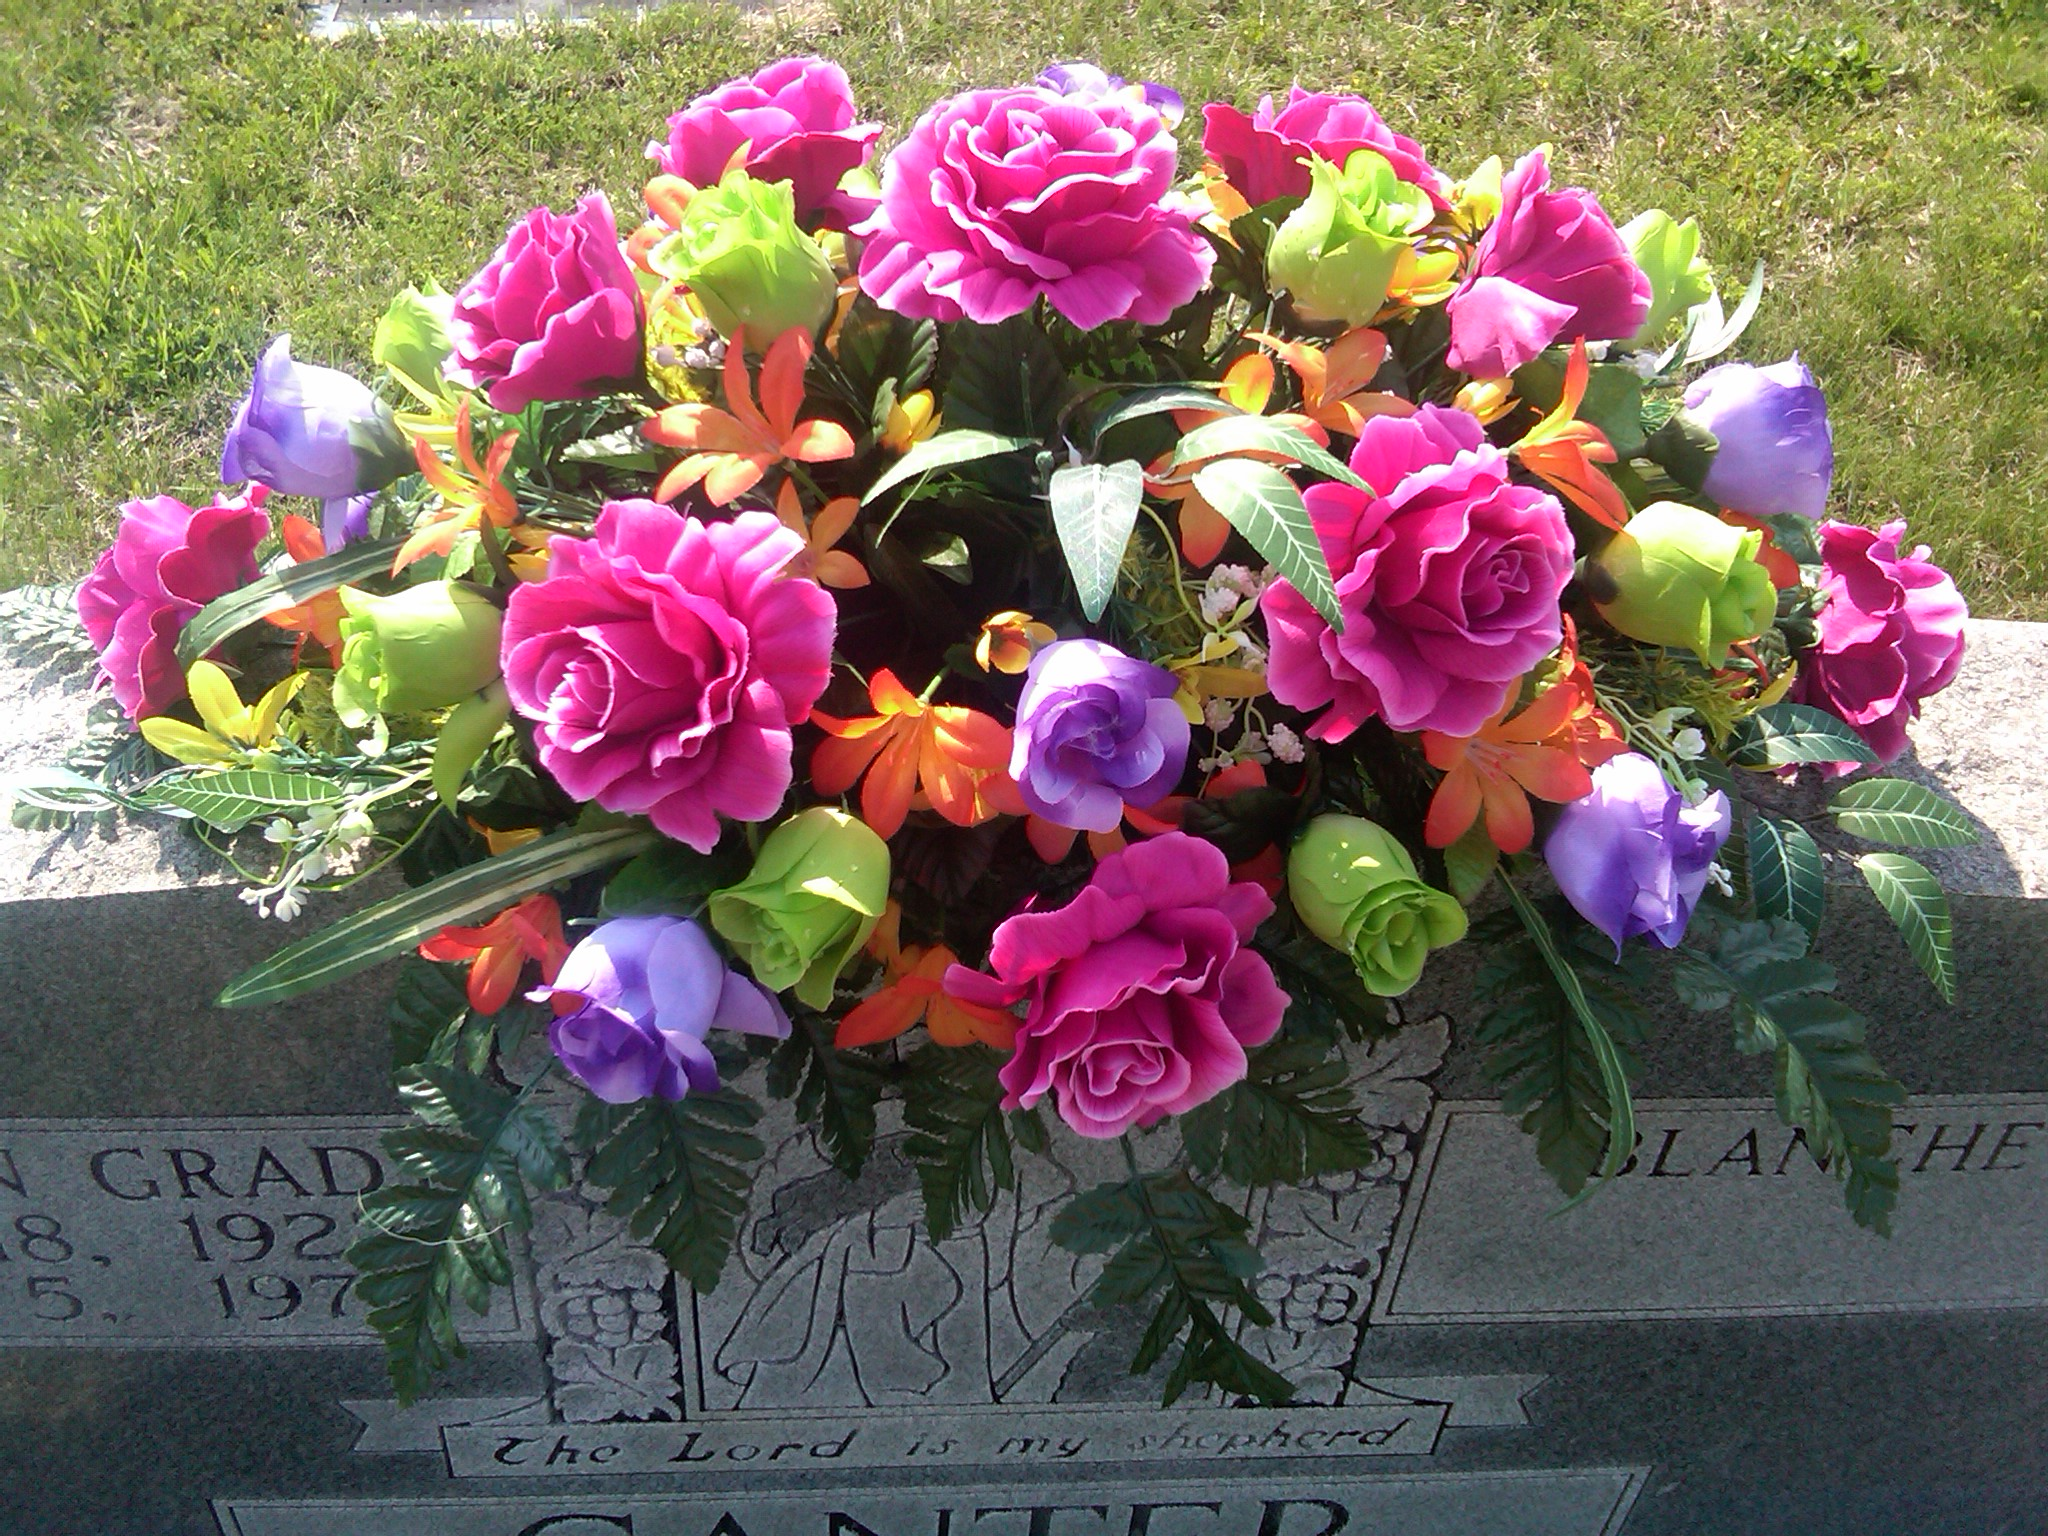 Easter Week and Decorating the Graves – Writingfeemail's Blog